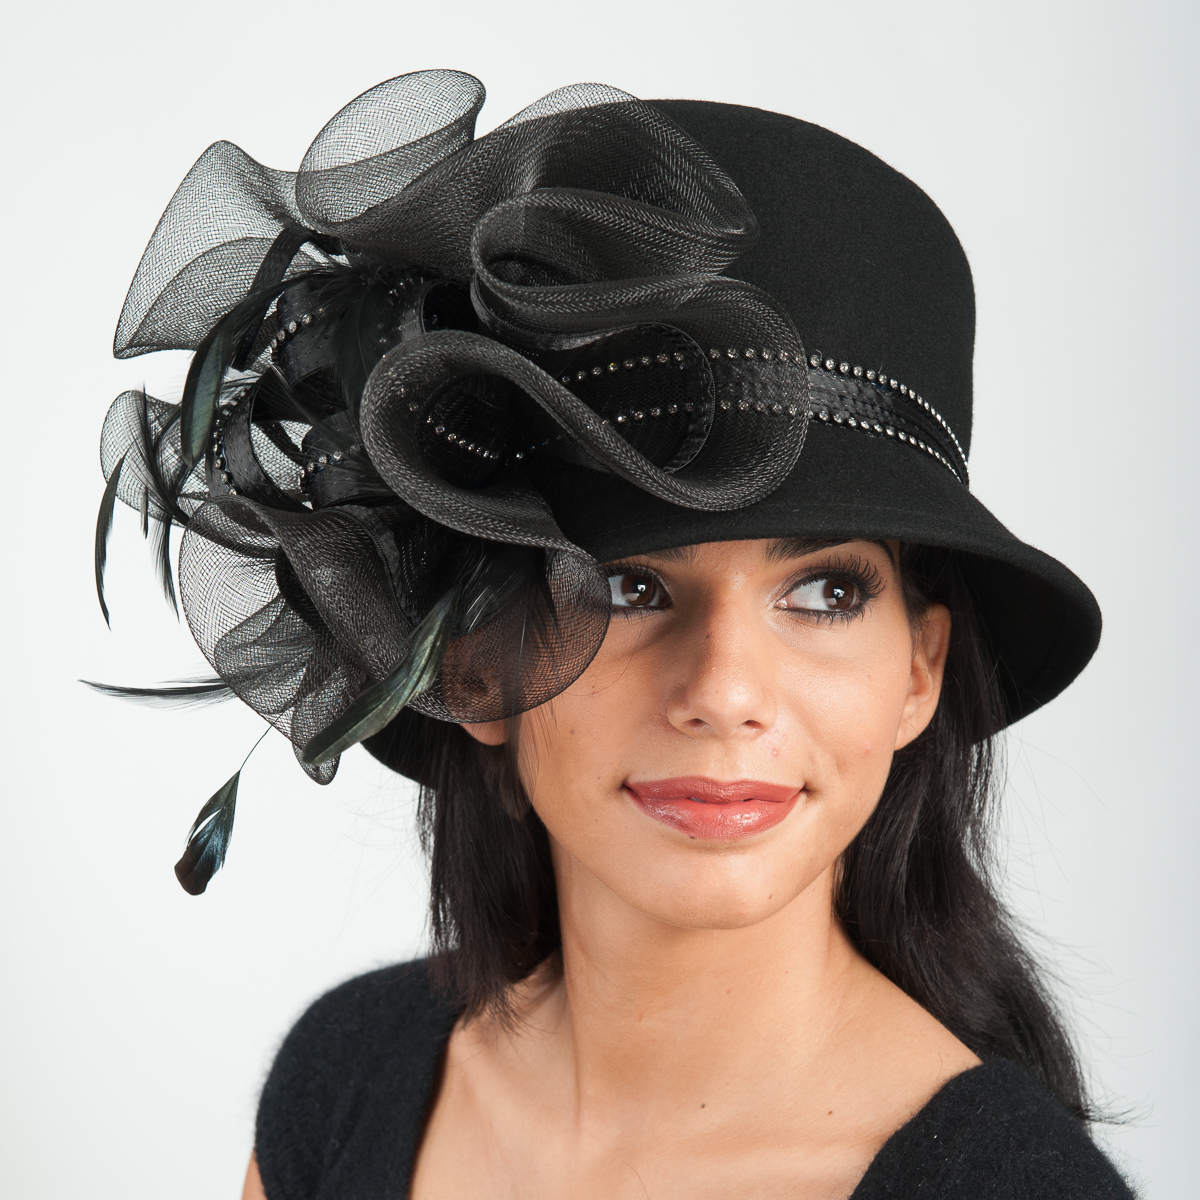 5eed000730a52f Black Mad Hatter Large Crinoline Satin Bow Hats-400601-BK- Sun Yorkos |  KaKyCo Accessories